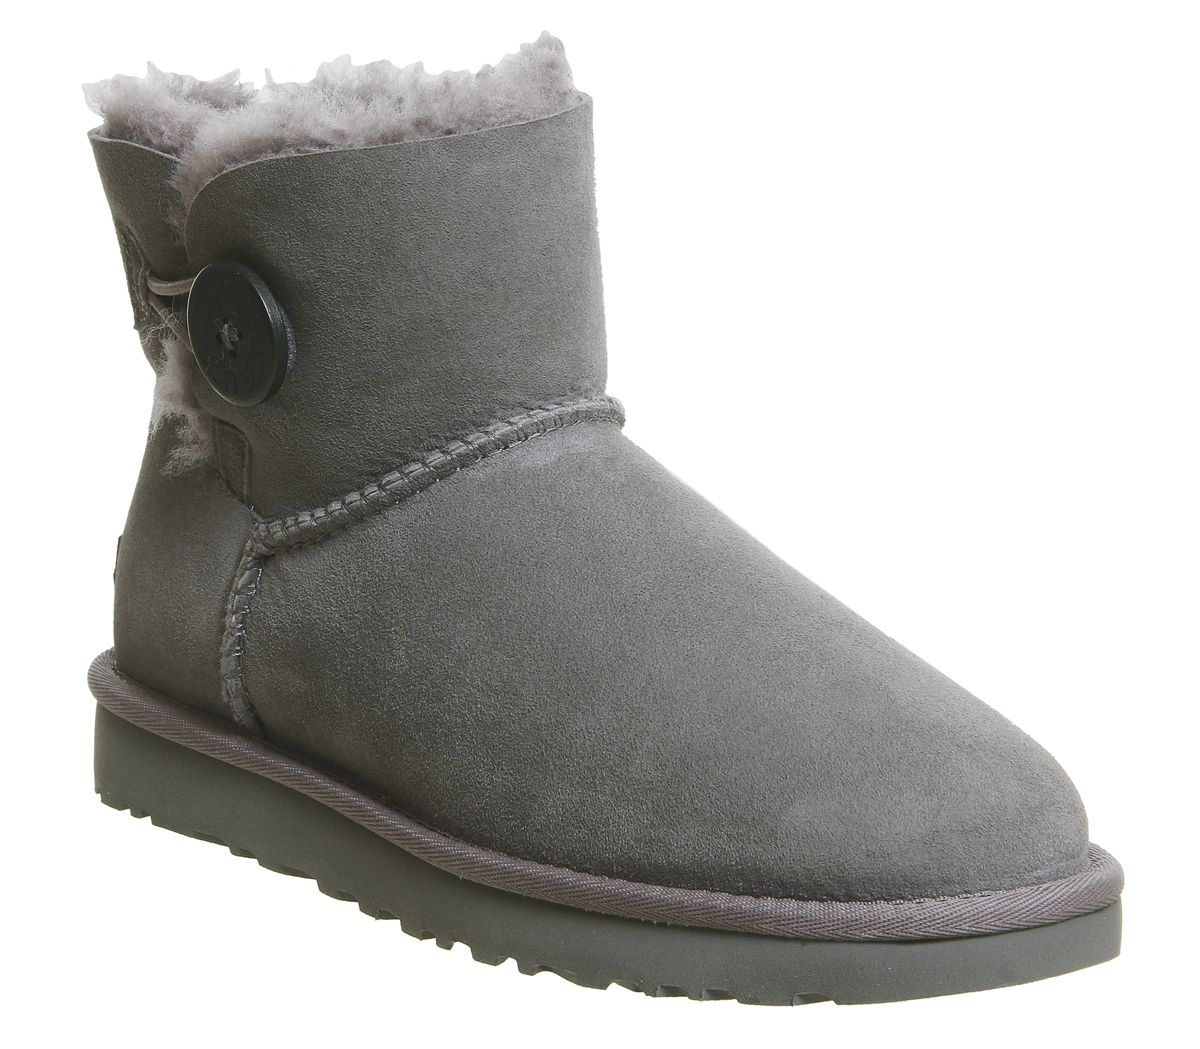 dfc0e7228d6 Mini Bailey Button II Boots